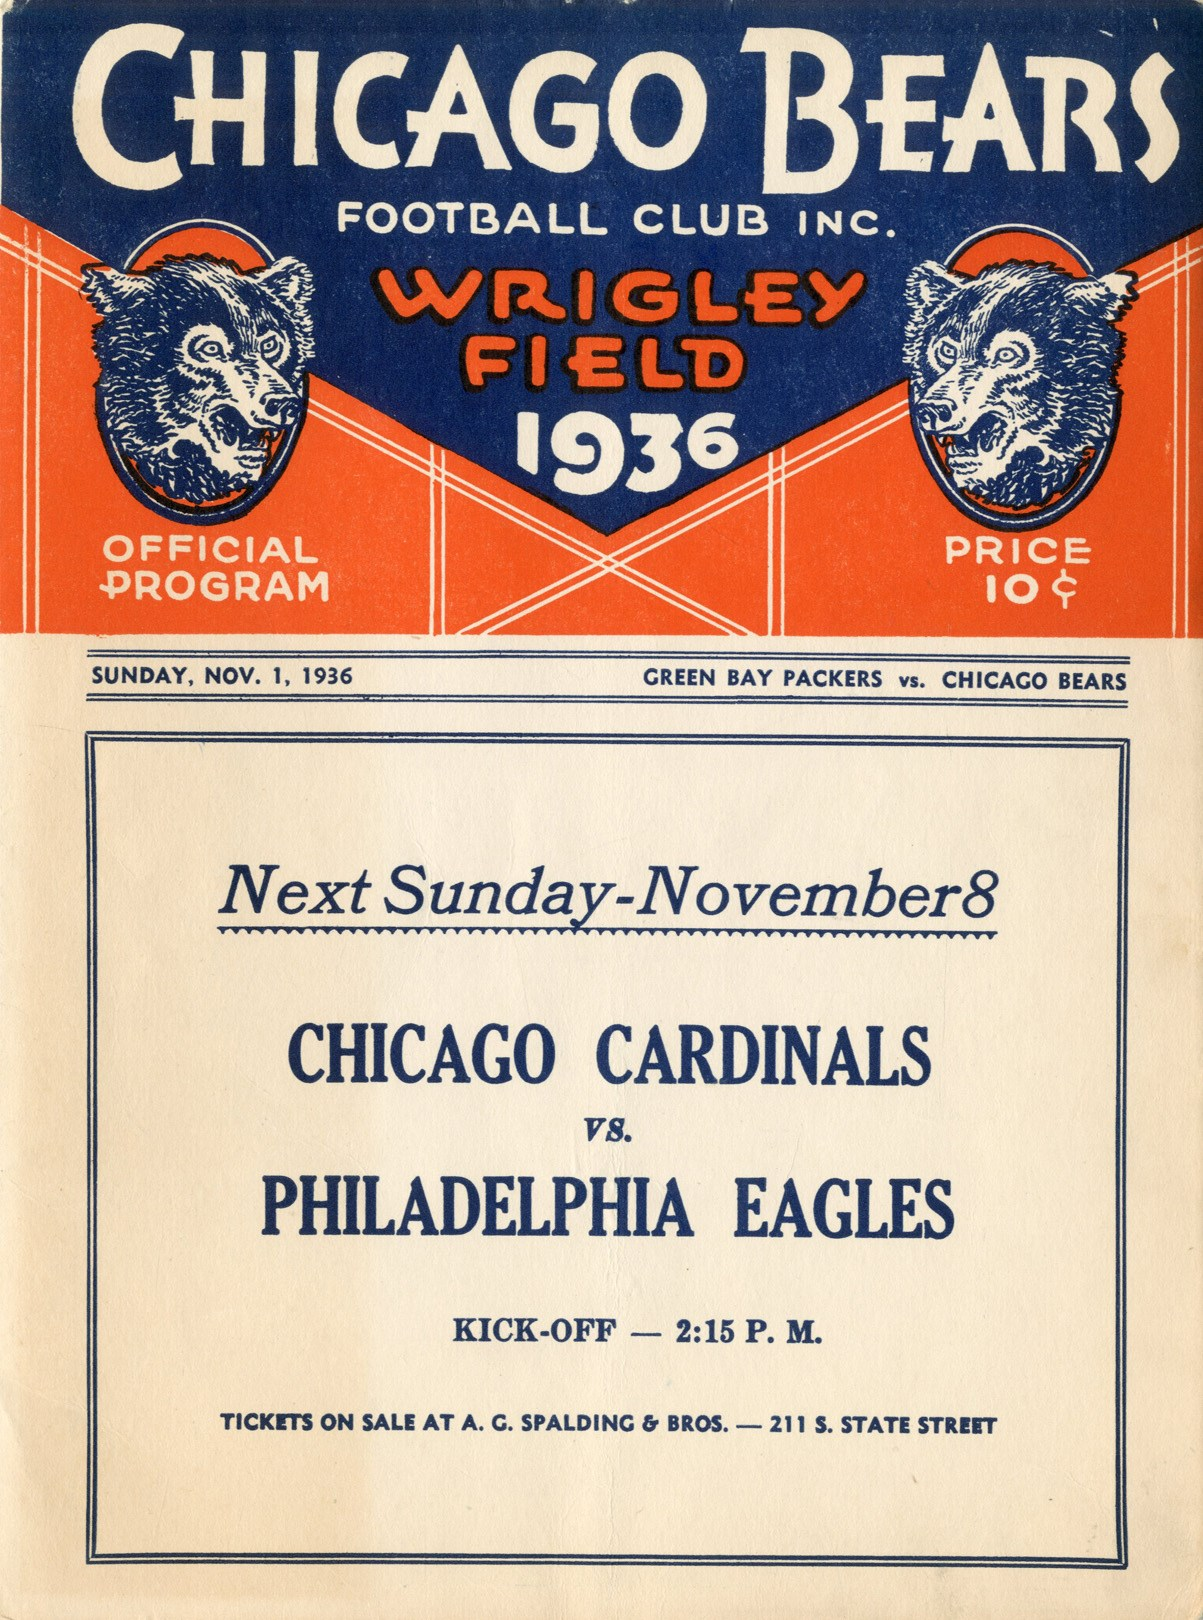 1936 Chicago Bears vs. Green Bay Packers Program